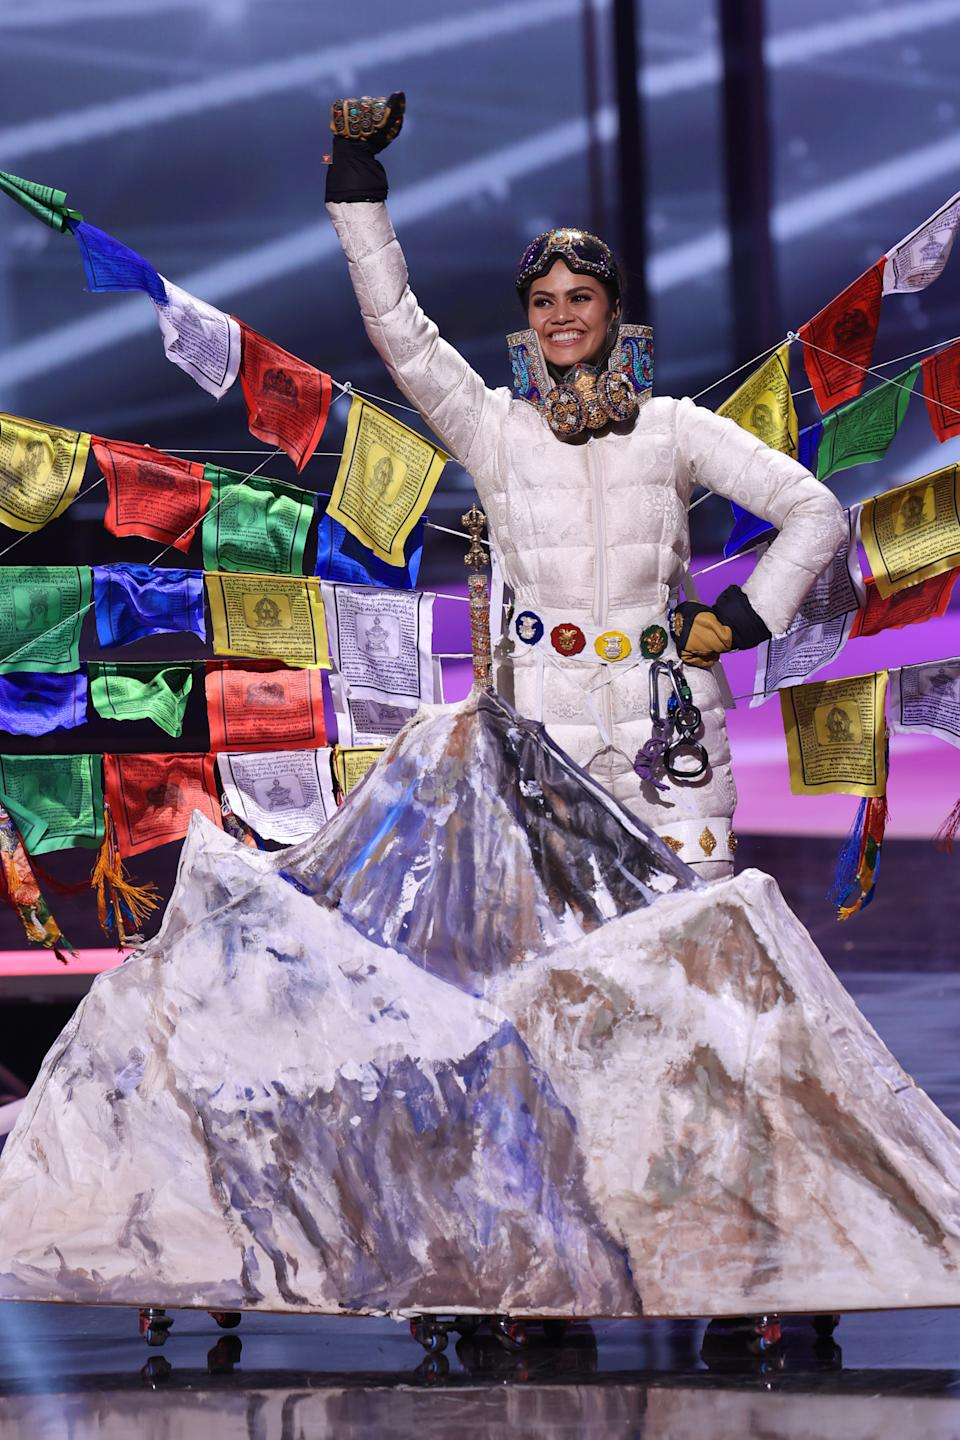 <p>Miss Nepal Anshika Sharma appears onstage at the Miss Universe 2021 - National Costume Show at Seminole Hard Rock Hotel & Casino on May 13, 2021 in Hollywood, Florida. (Photo by Rodrigo Varela/Getty Images)</p>